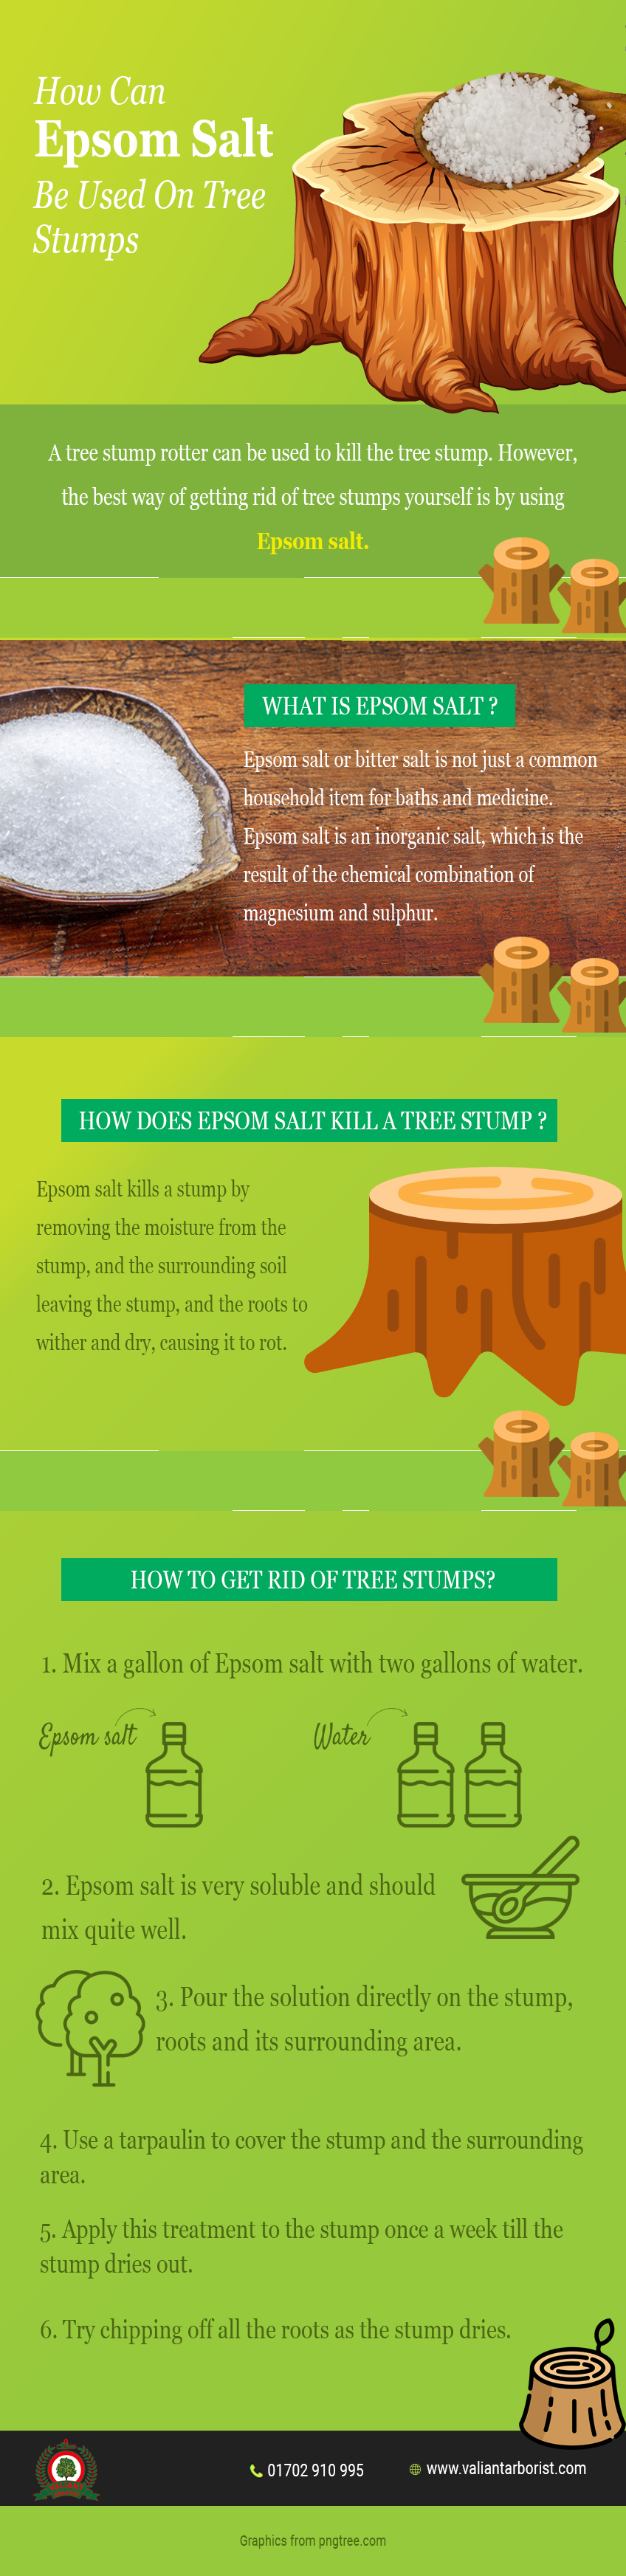 How-Can-Epsom-Salt-Be-Used-On-Tree-Stumps